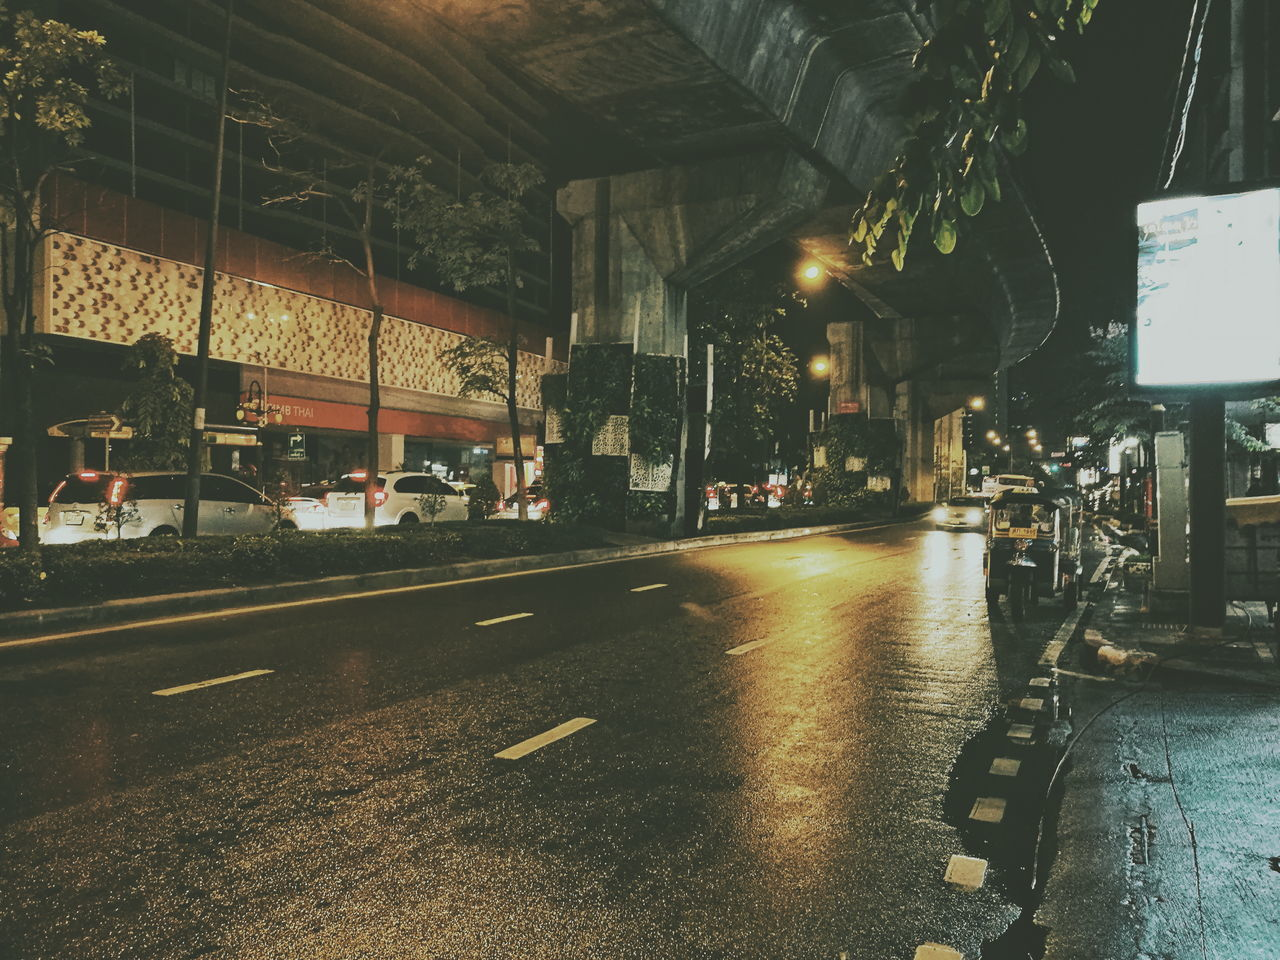 illuminated, night, street, transportation, no people, road, built structure, architecture, outdoors